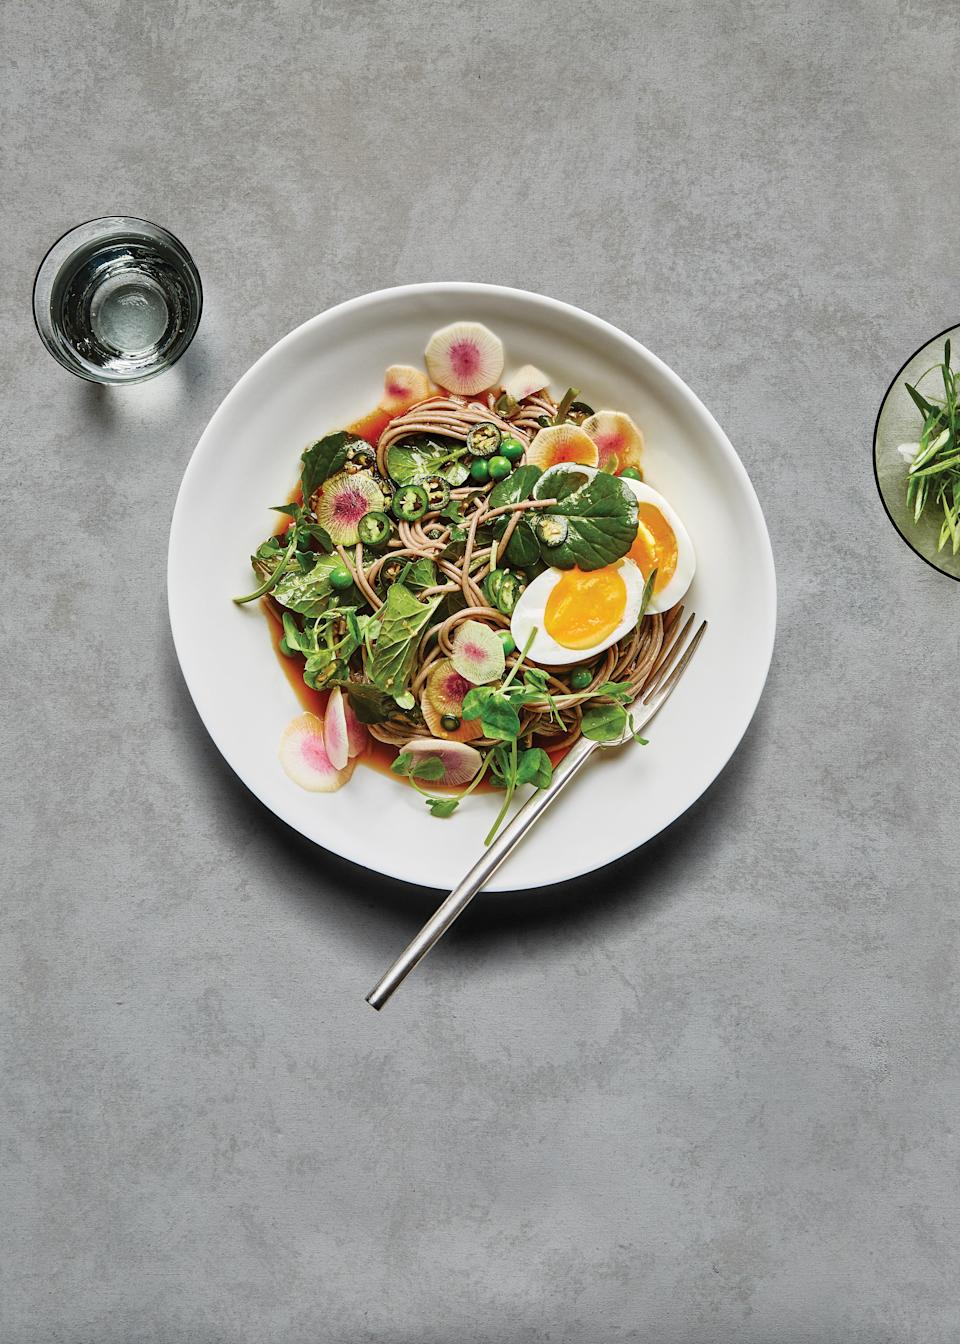 """<a href=""""https://www.bonappetit.com/recipe/cold-soba-noodles-with-jammy-eggs-and-peas?mbid=synd_yahoo_rss"""" rel=""""nofollow noopener"""" target=""""_blank"""" data-ylk=""""slk:See recipe."""" class=""""link rapid-noclick-resp"""">See recipe.</a>"""